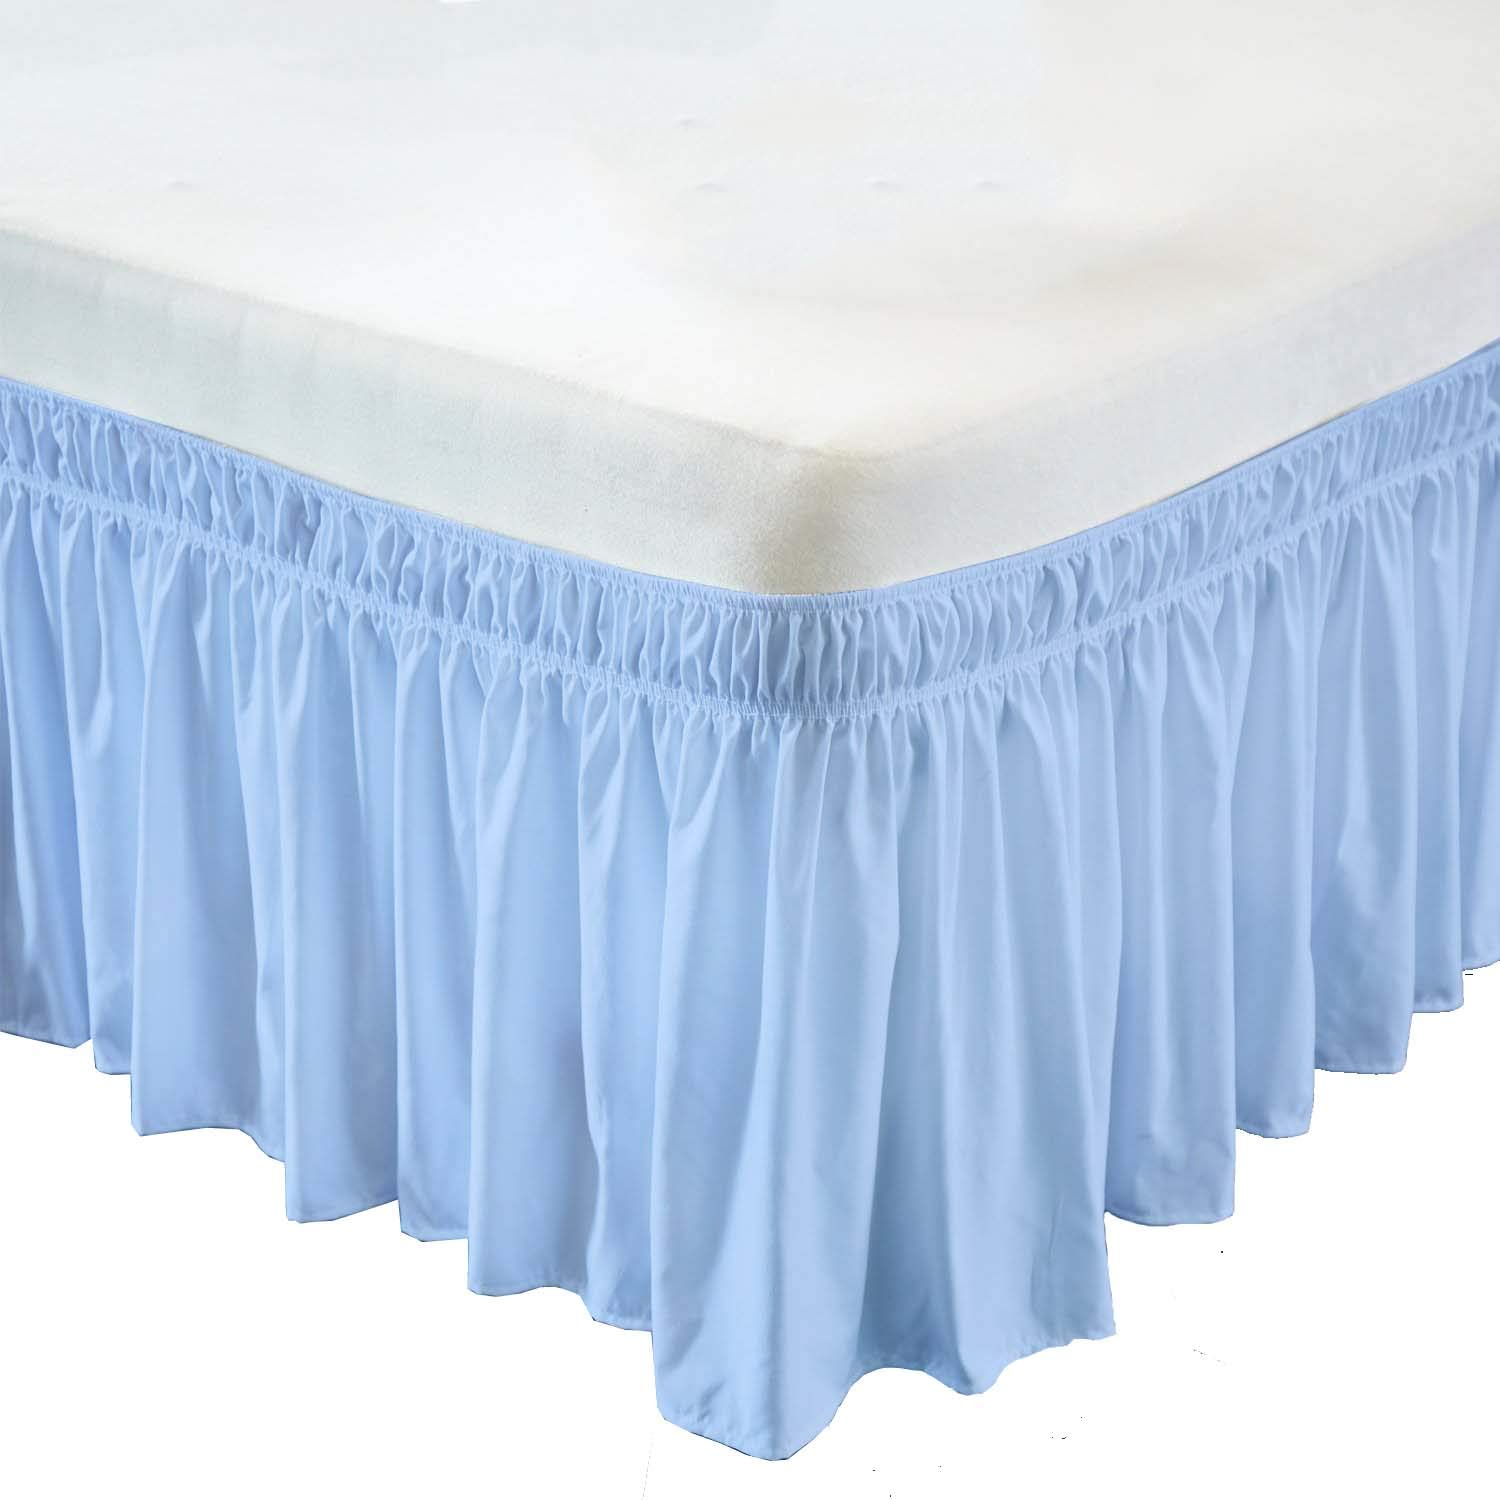 Wrap Around Bed Skirt- 12 Inch Drop Length Style Easy Fit Elastic Bed Ruffles Bed-Skirt Wrinkle Free Bed Skirt - Light Blue, Queen in All Bed Sizes and Colors